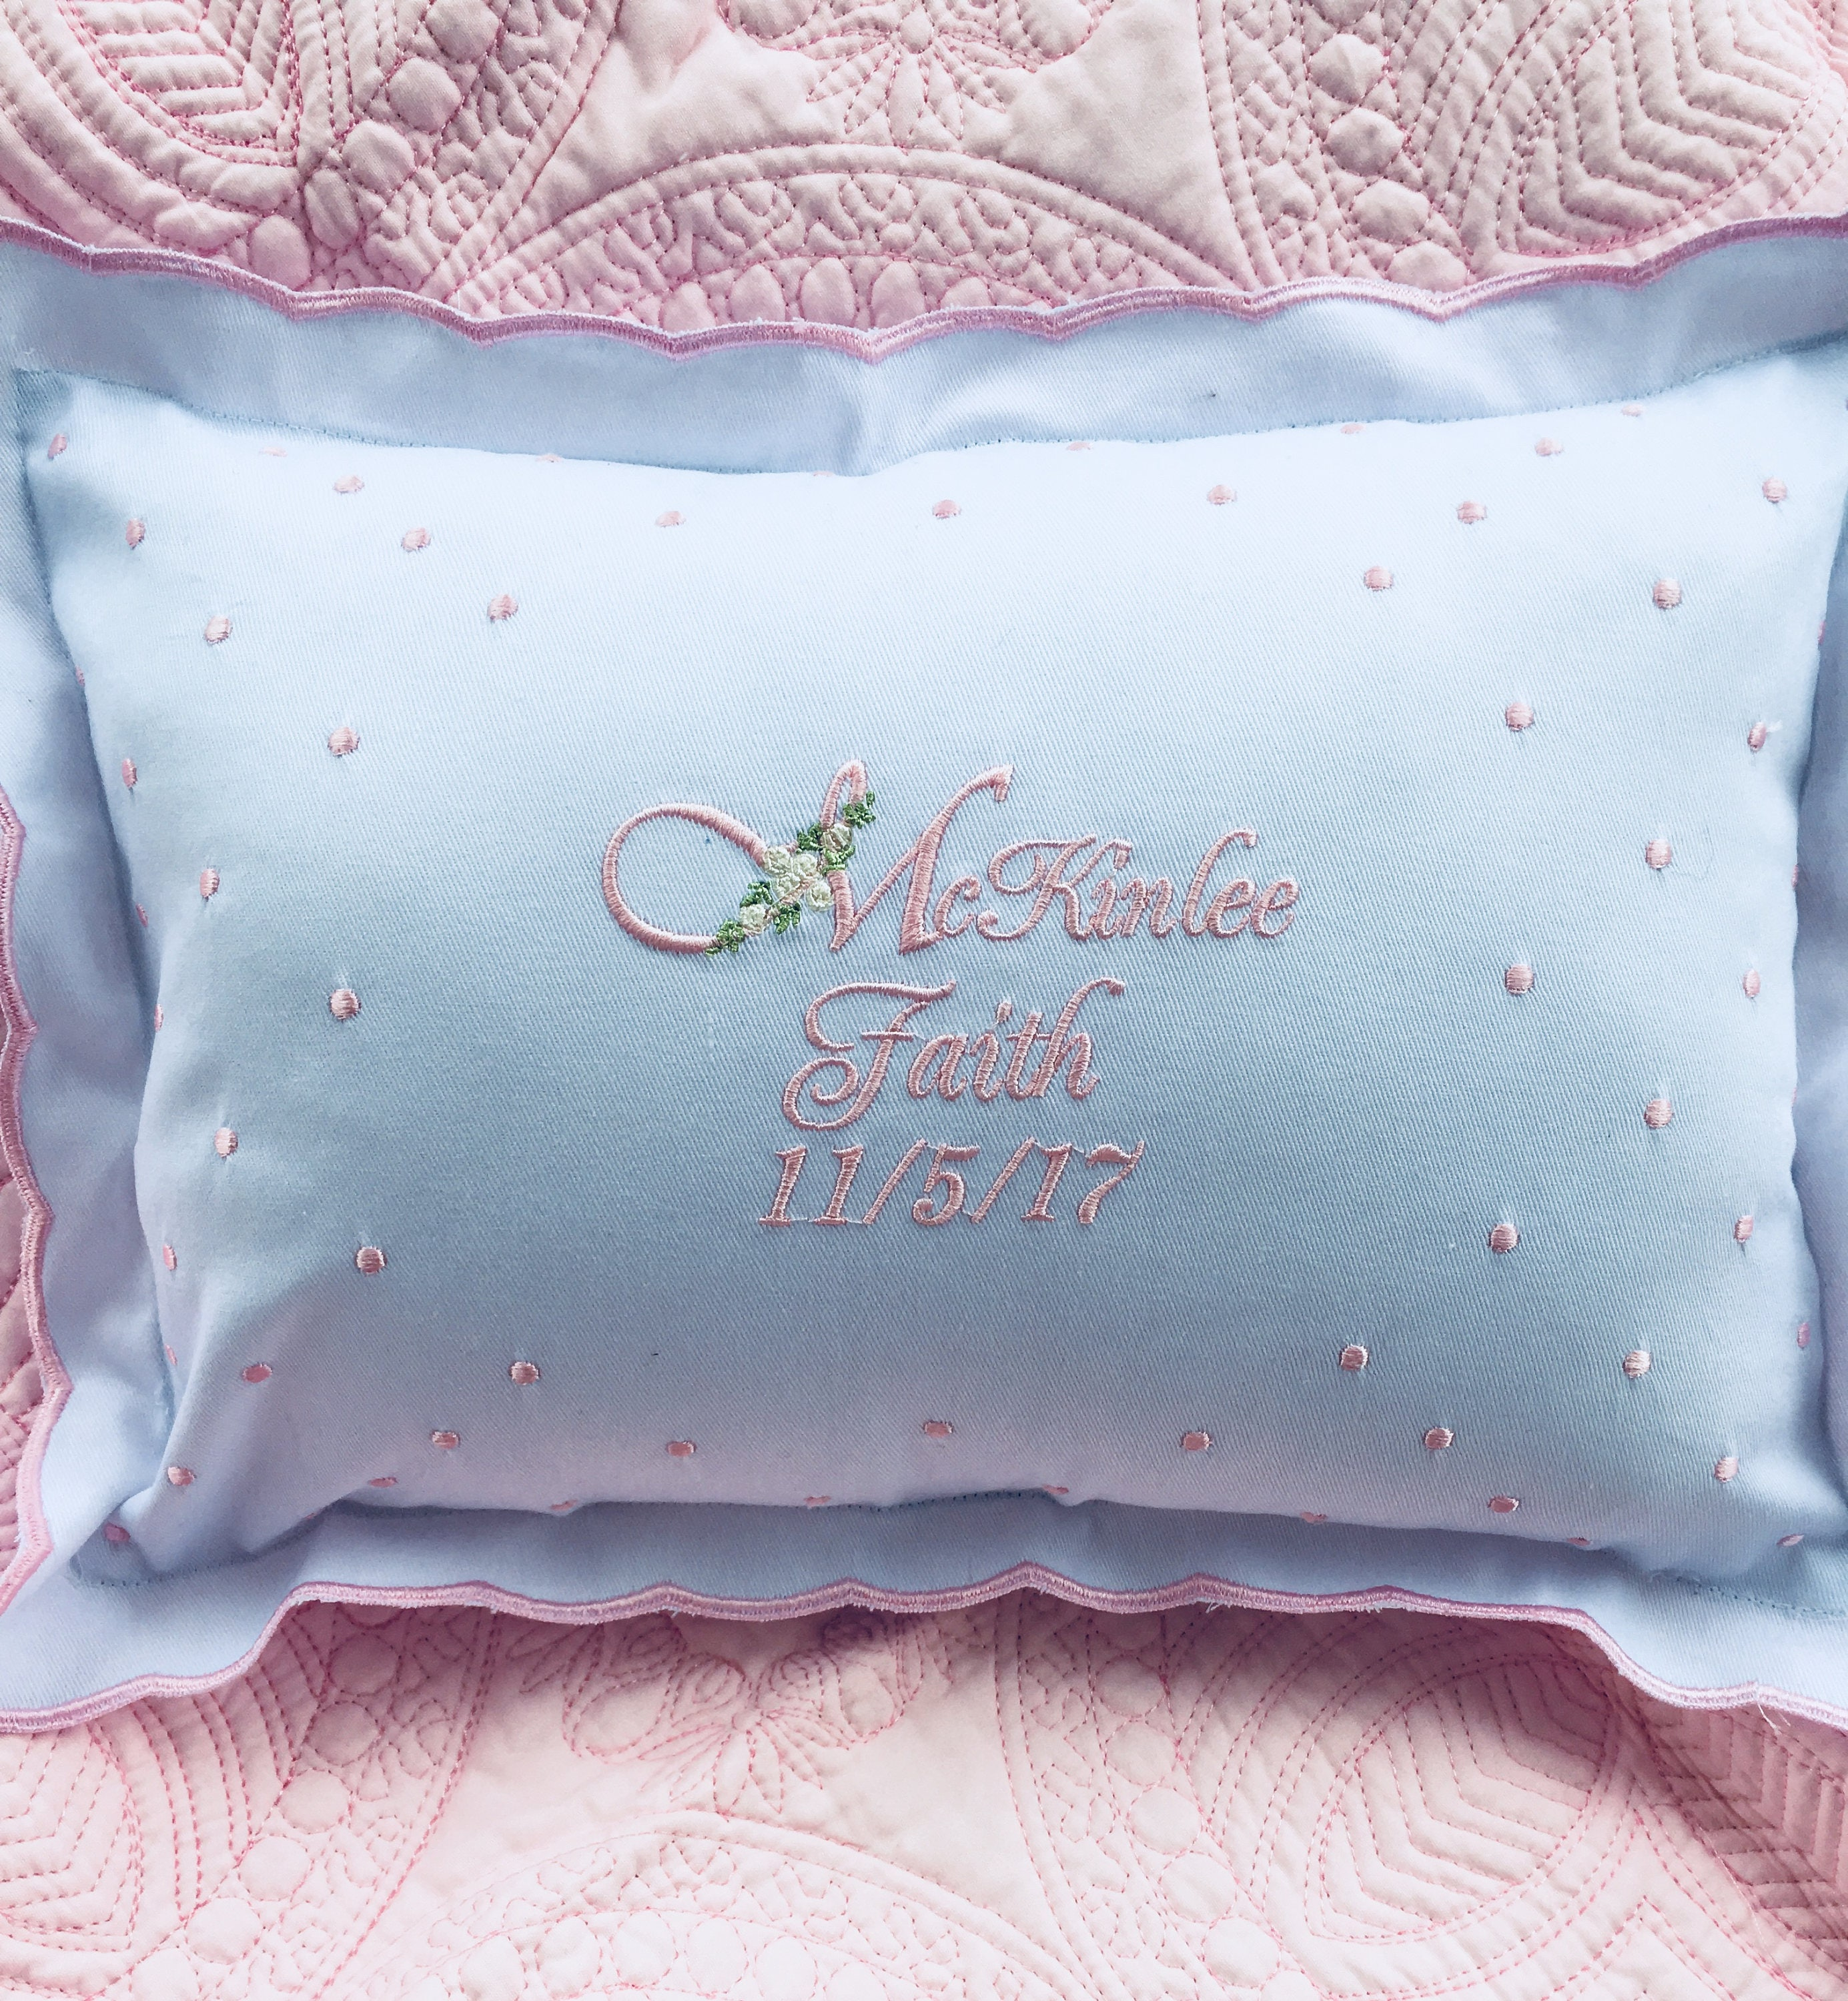 Personalized Baby Pillow, Embroidered baby gift , Baby Shower, Newborn  Gift, Pillows with Sayings, Christening Gifts, Baby Pillow